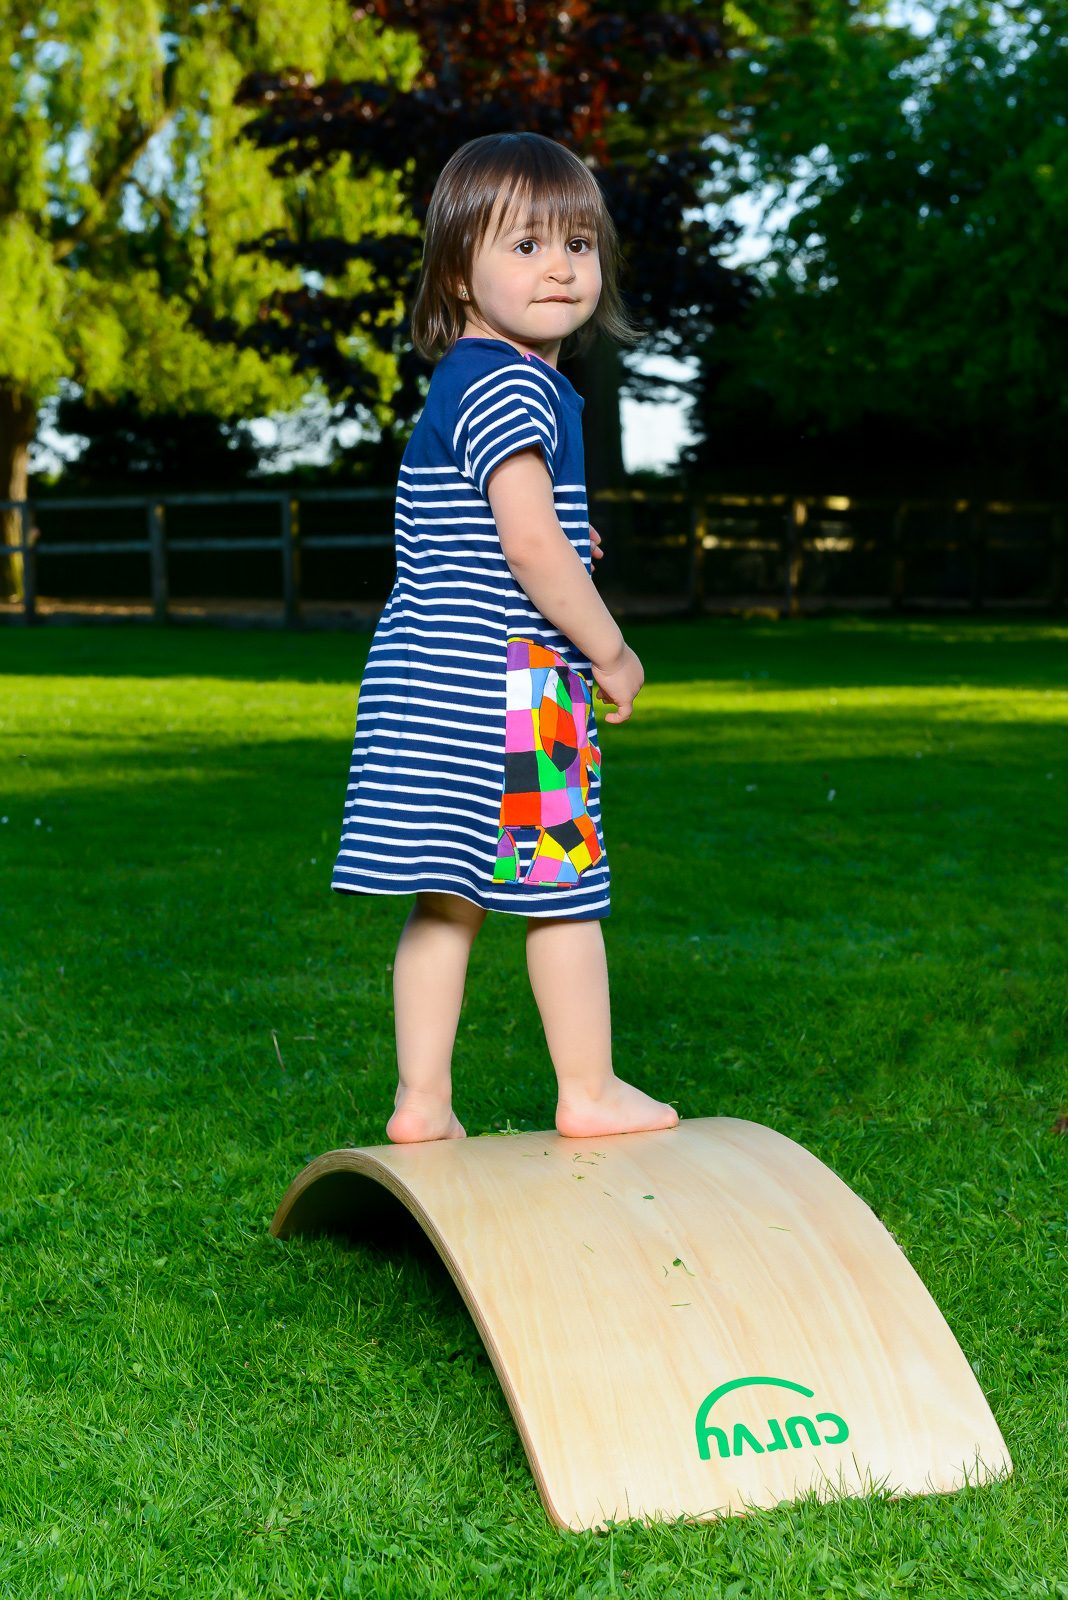 outdoors toddler standing on curvy balance board